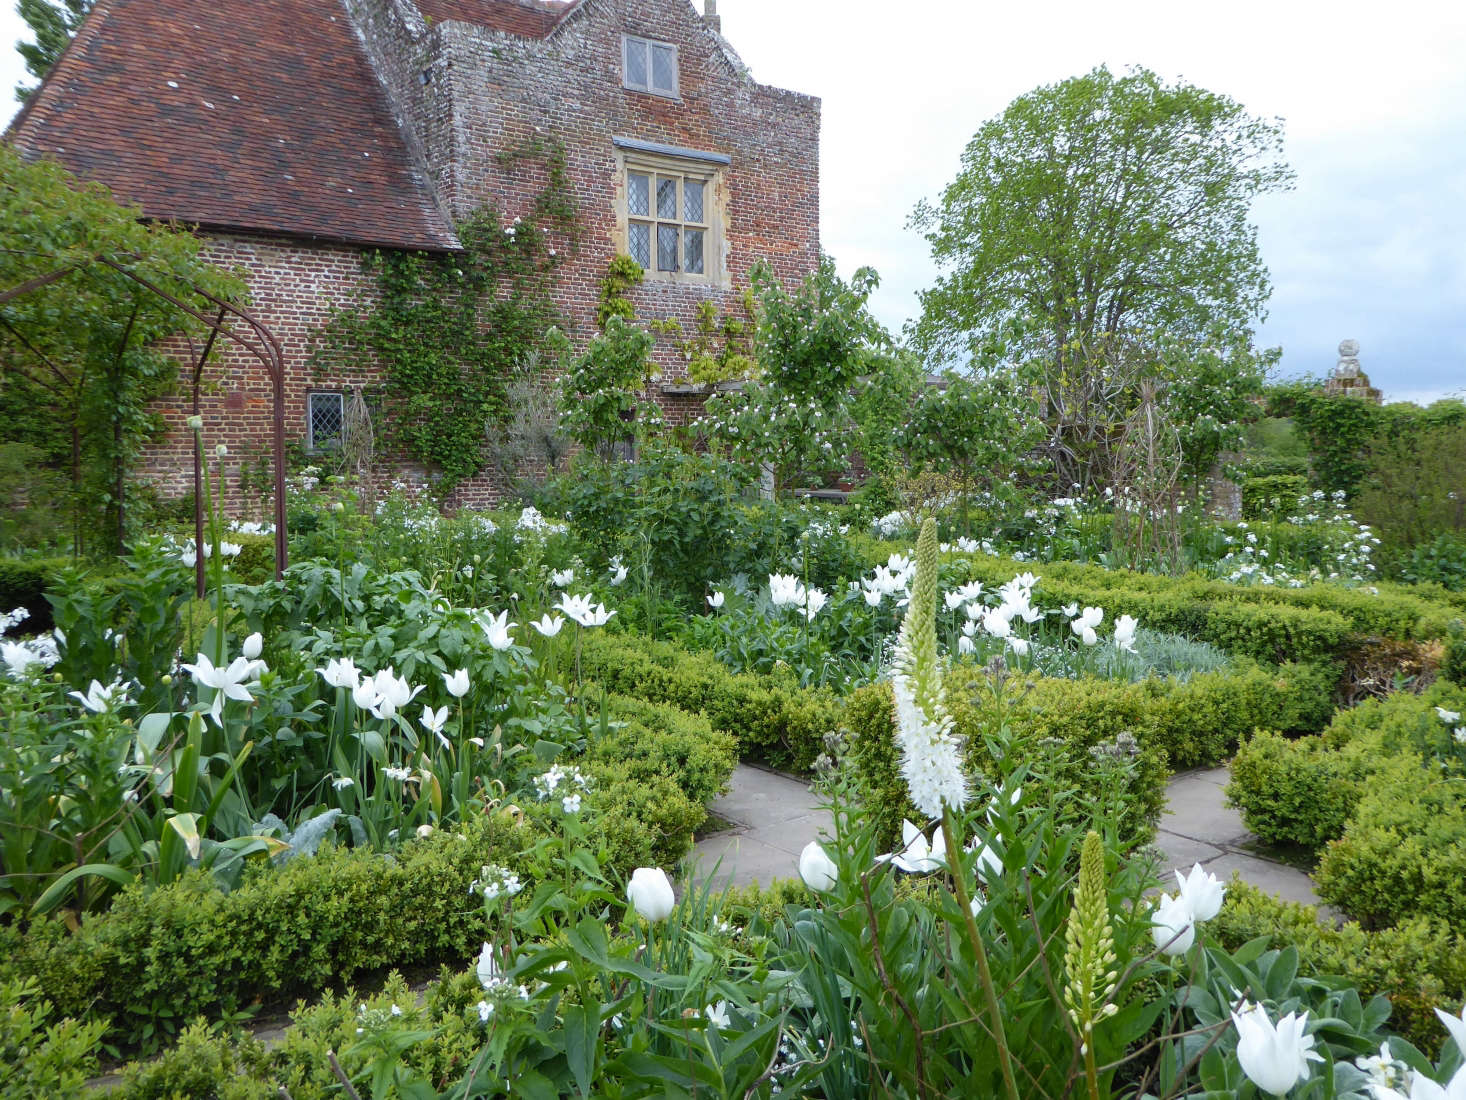 The white garden at Aatt Sissinghurst Castle, where Vita Sackville-West created her breathtaking gardens in Kent, England. Photograph by Clare Coulson for Gardenista, from Sleeping at Sissinghurst: An Overnight Stay at England&#8